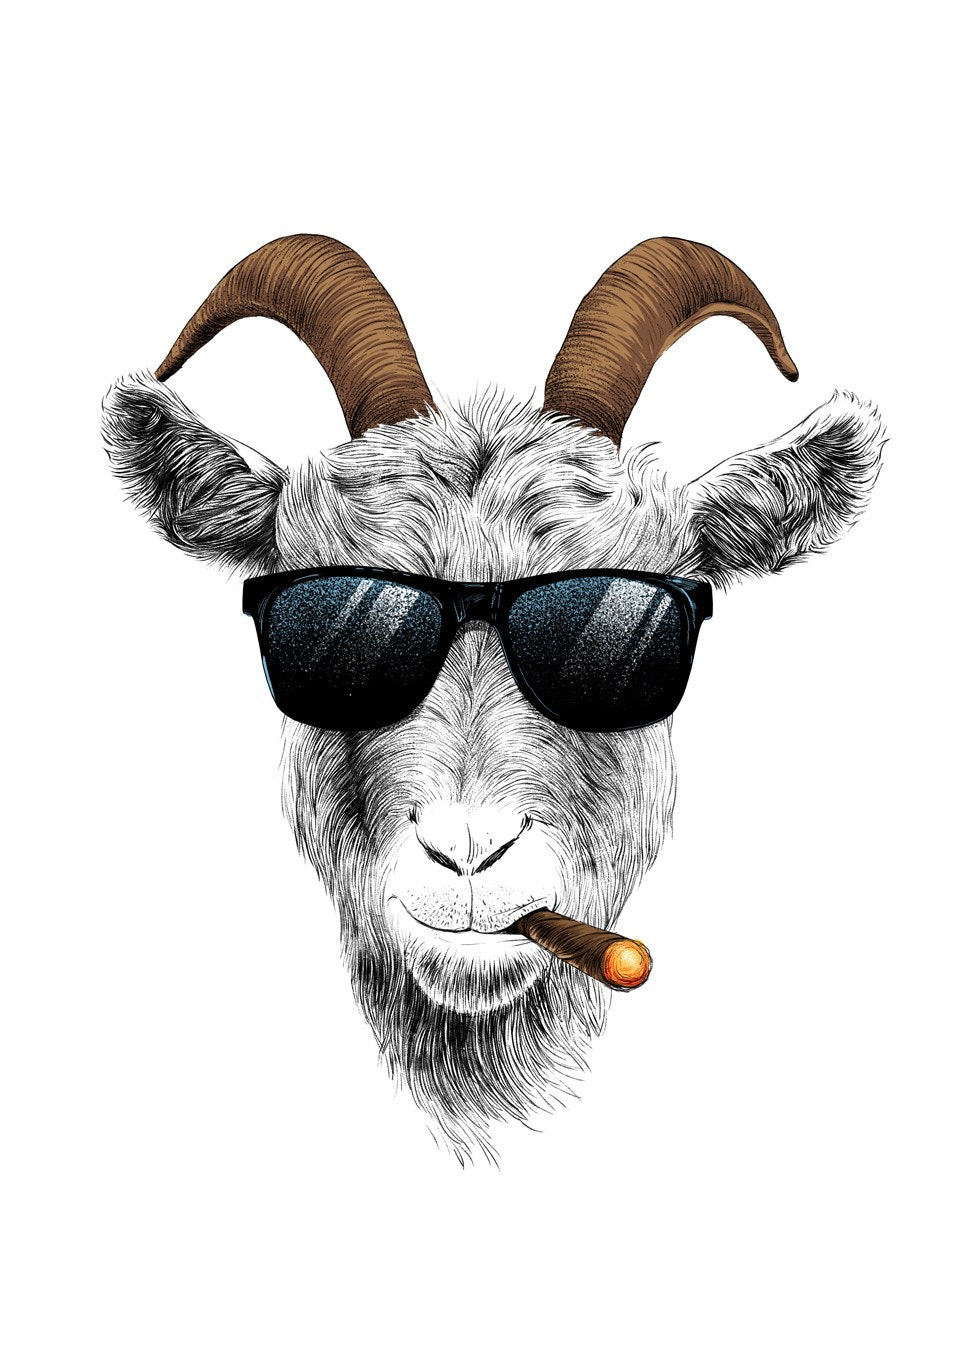 Goat smoking cigar